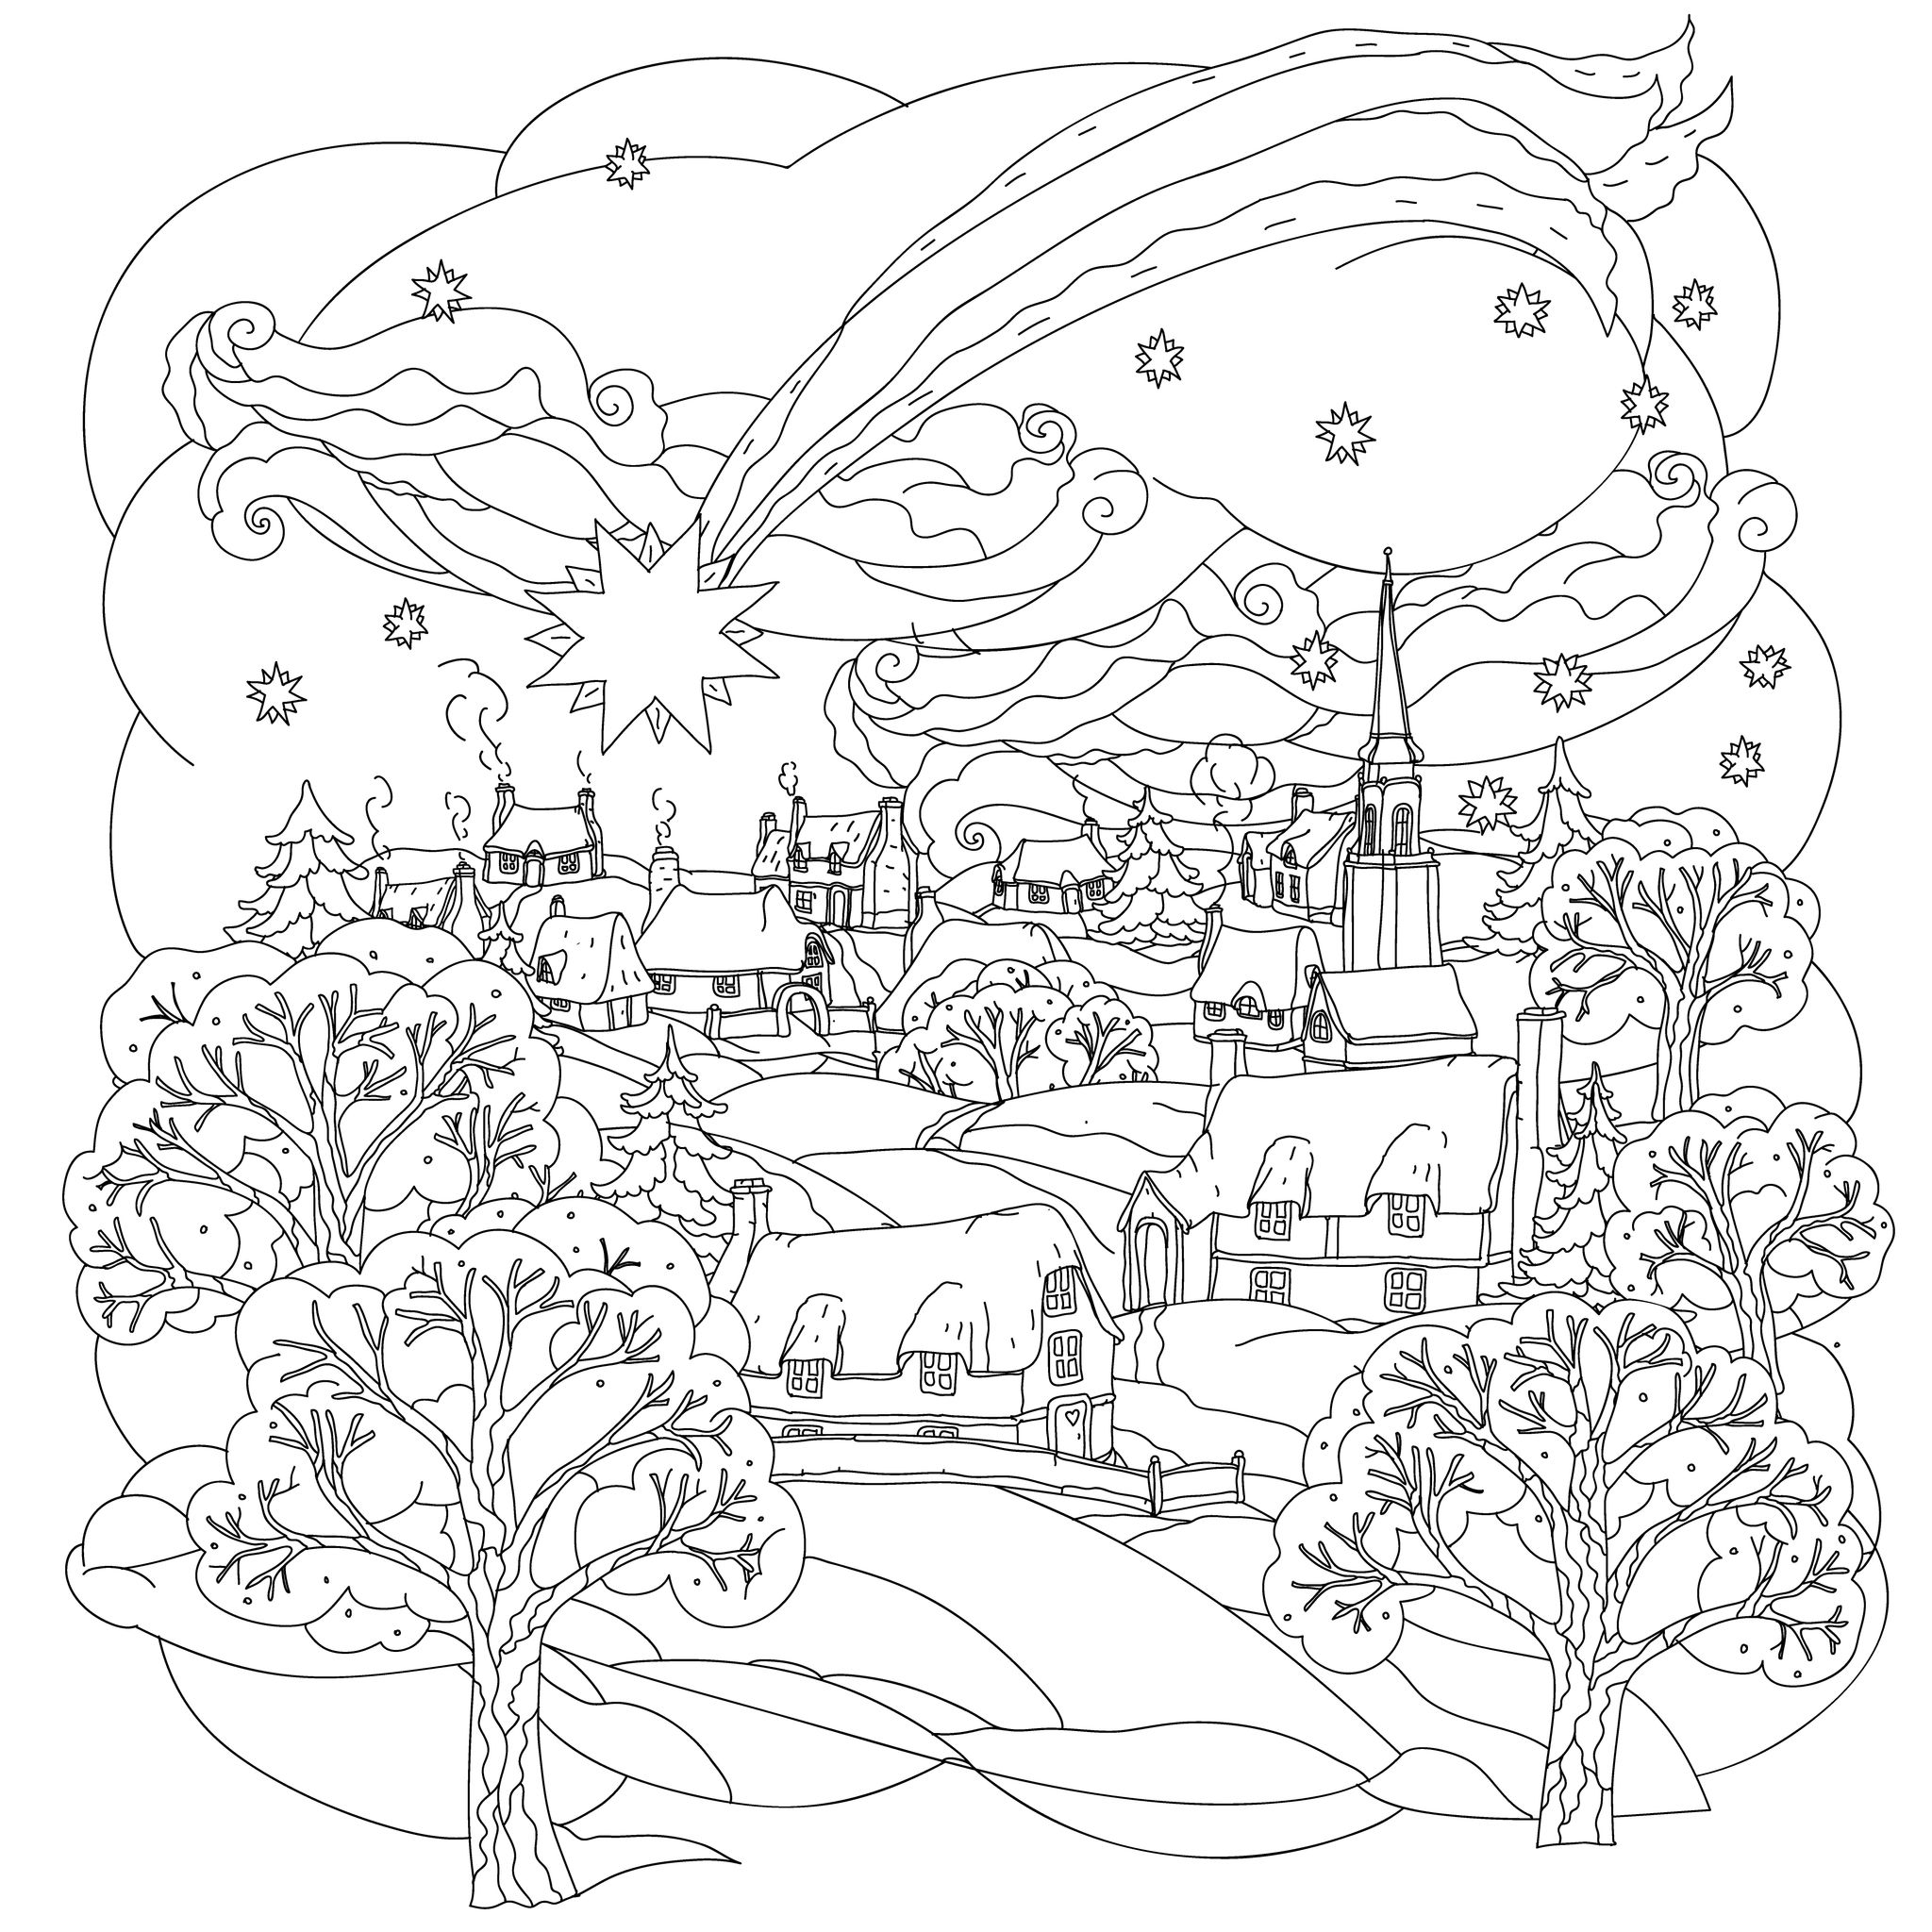 Christmas Star Flies Over Winter Village A Beautiful And Simple Coloring Page